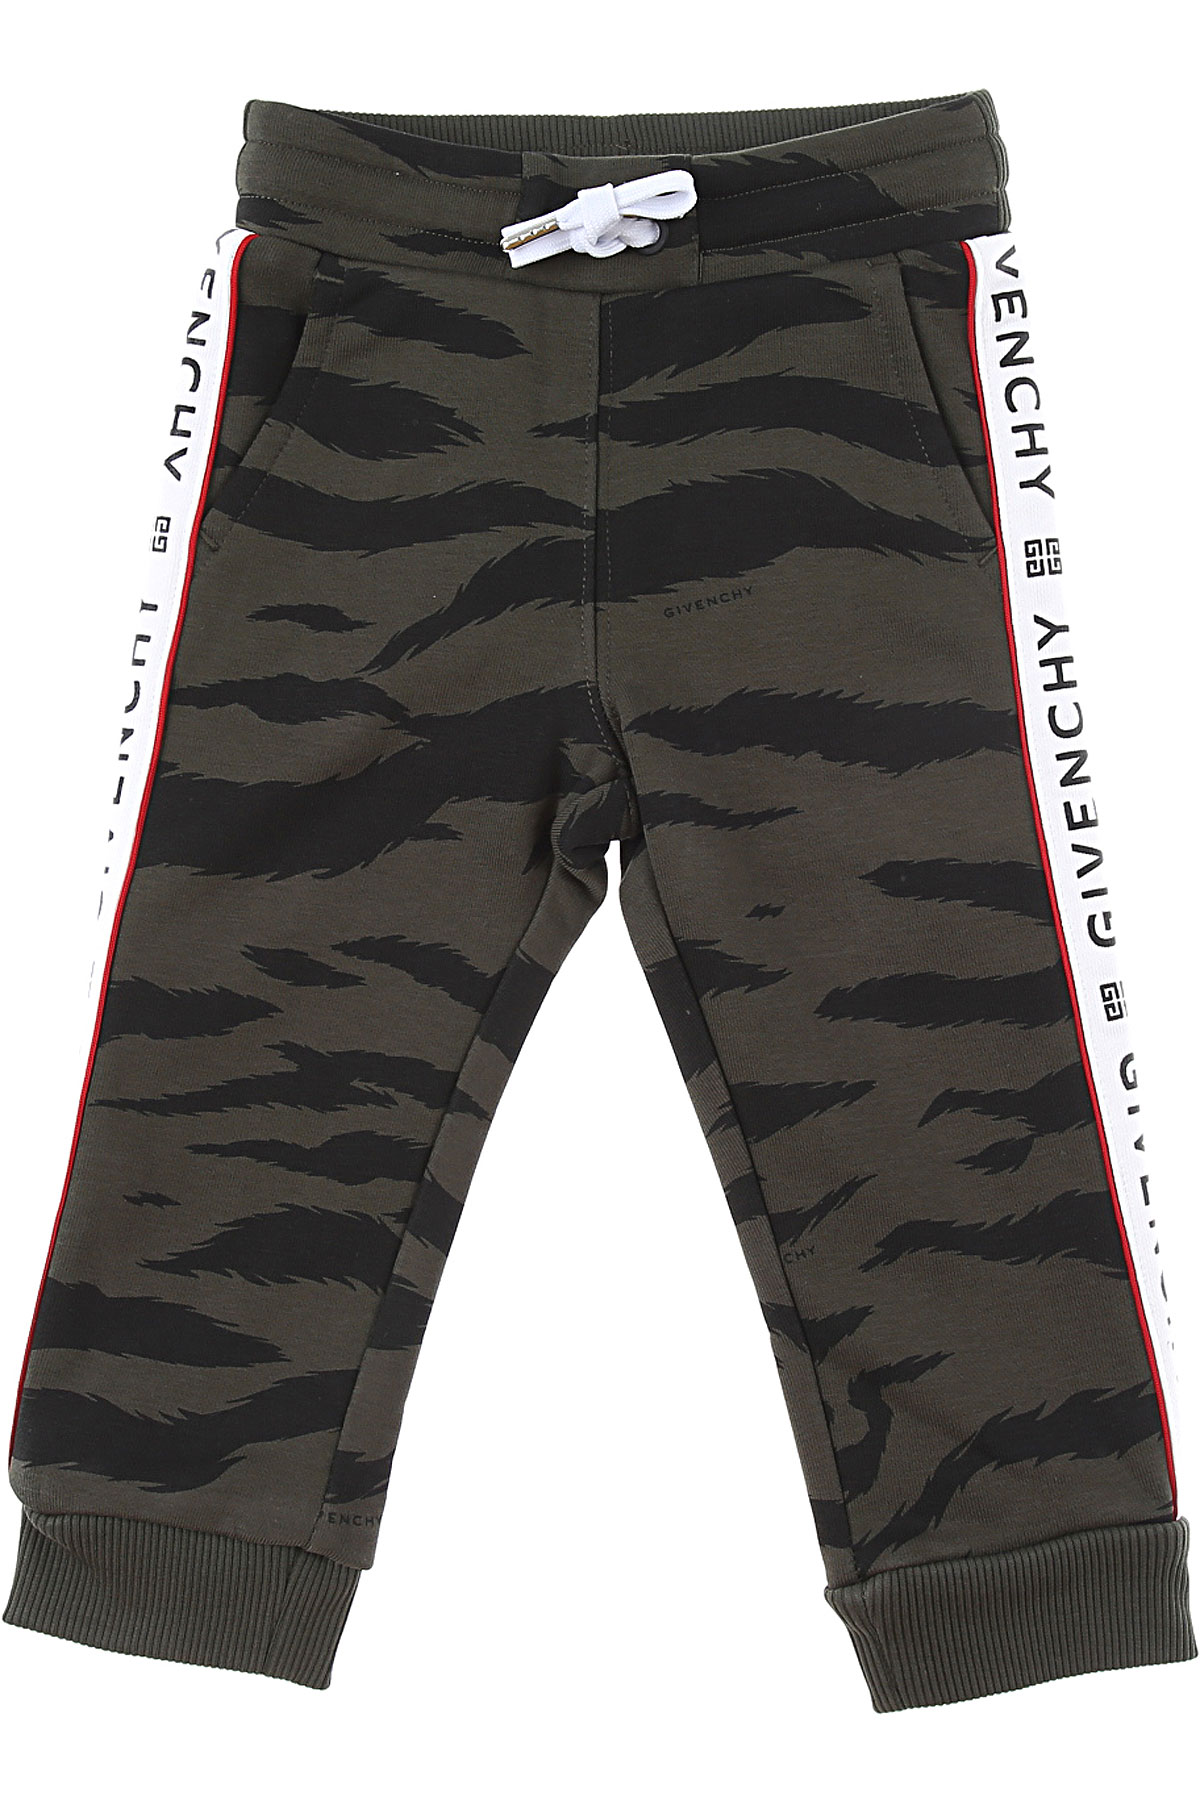 Givenchy Baby Sweatpants for Boys On Sale, Dark Green, Cotton, 2019, 12 M 18 M 2Y 3Y 9 M